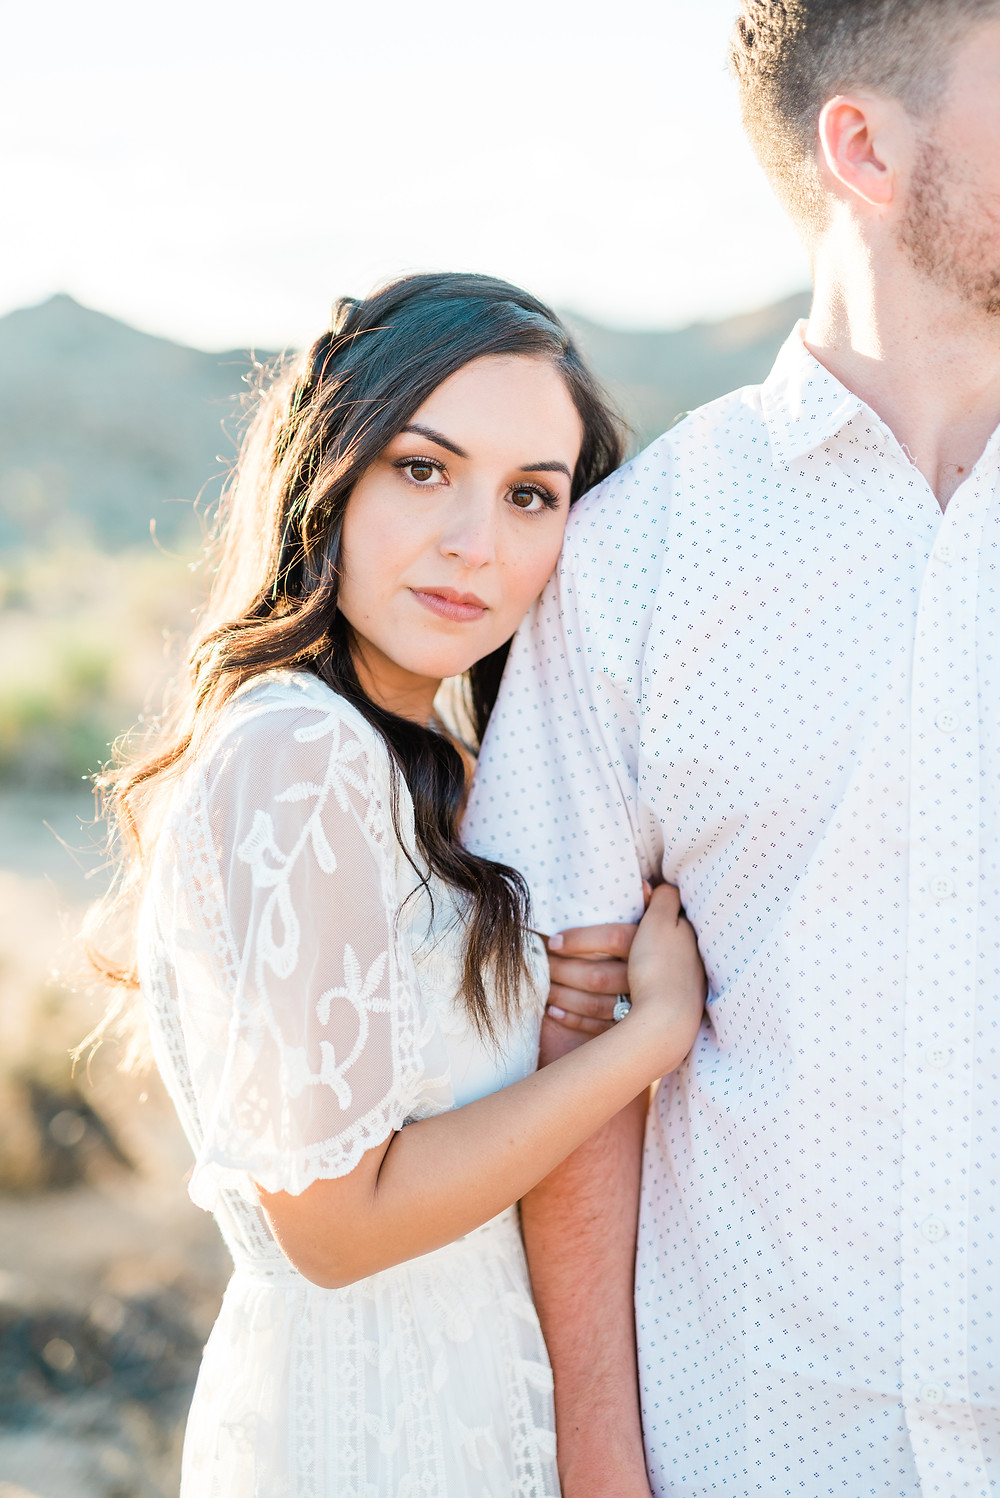 Romantic and Beautiful Joshua Tree Engagement Photos - wedding and portrait photographer